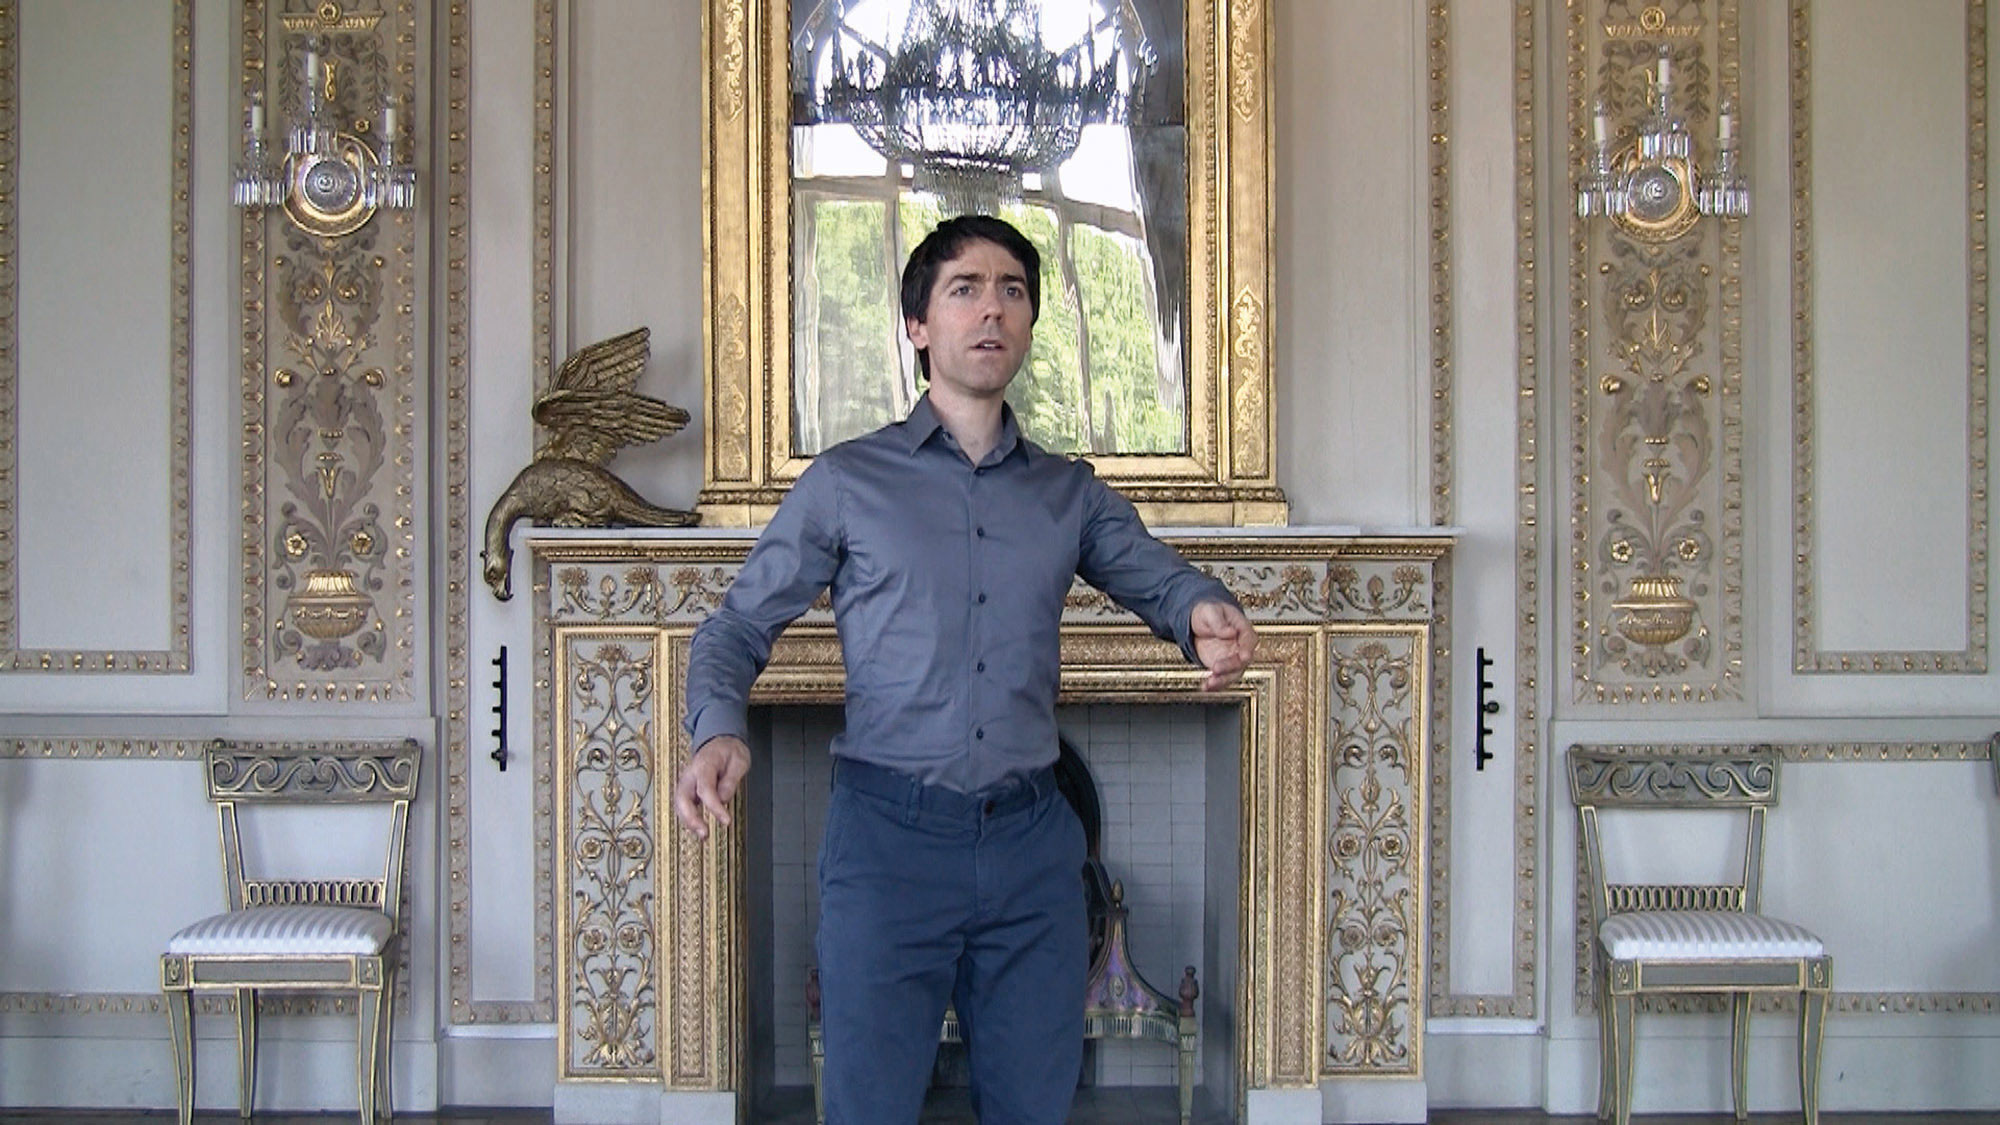 a man in blue standing in a baroque room.